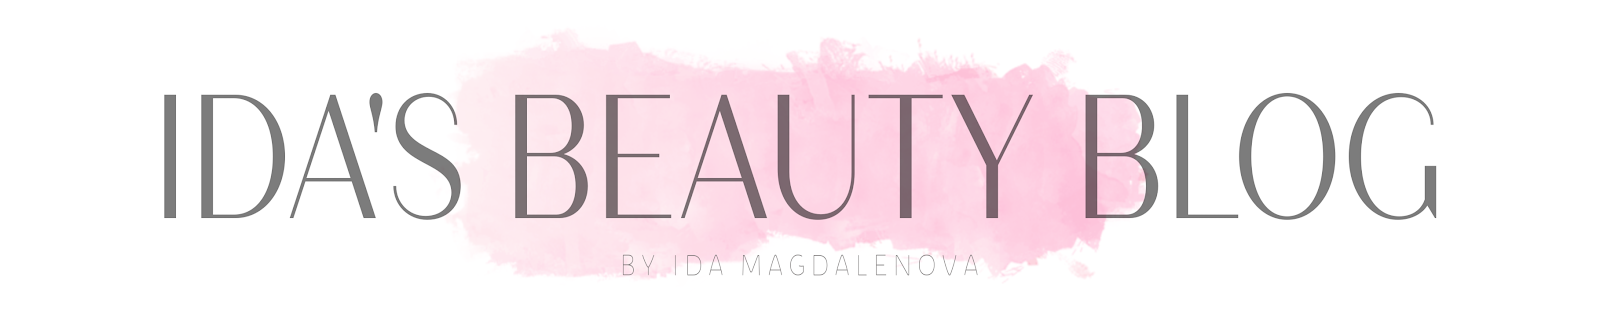 Ida's Beauty Blog